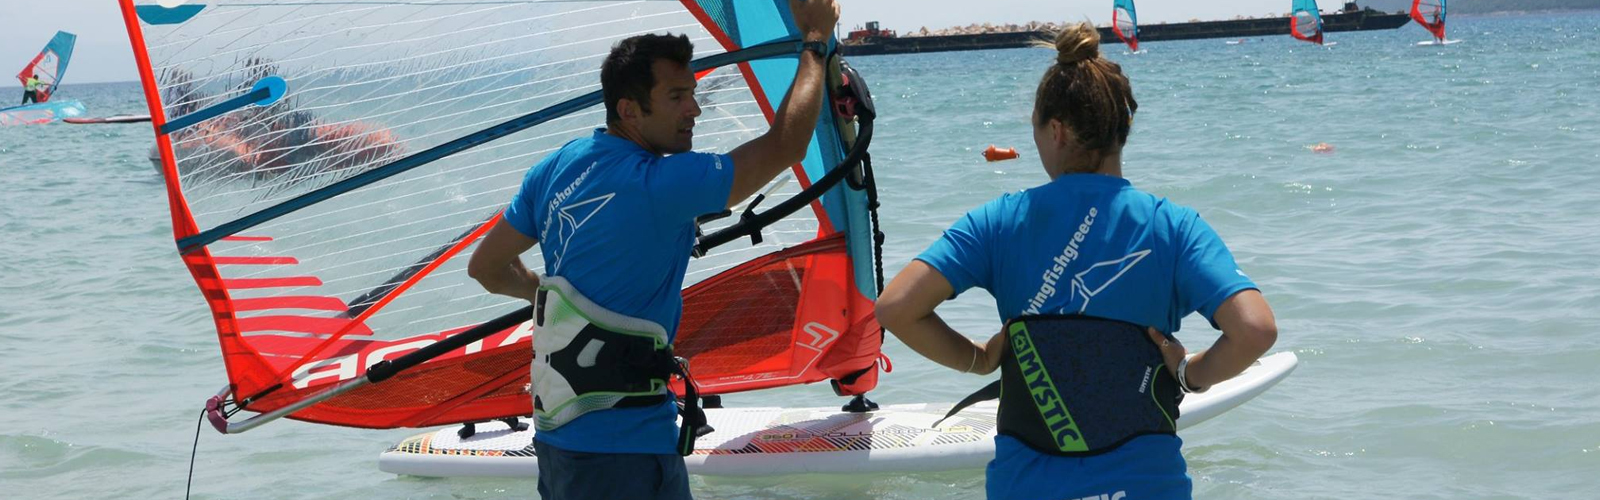 RYA Windsurfing Instructor Course with Flying Fish